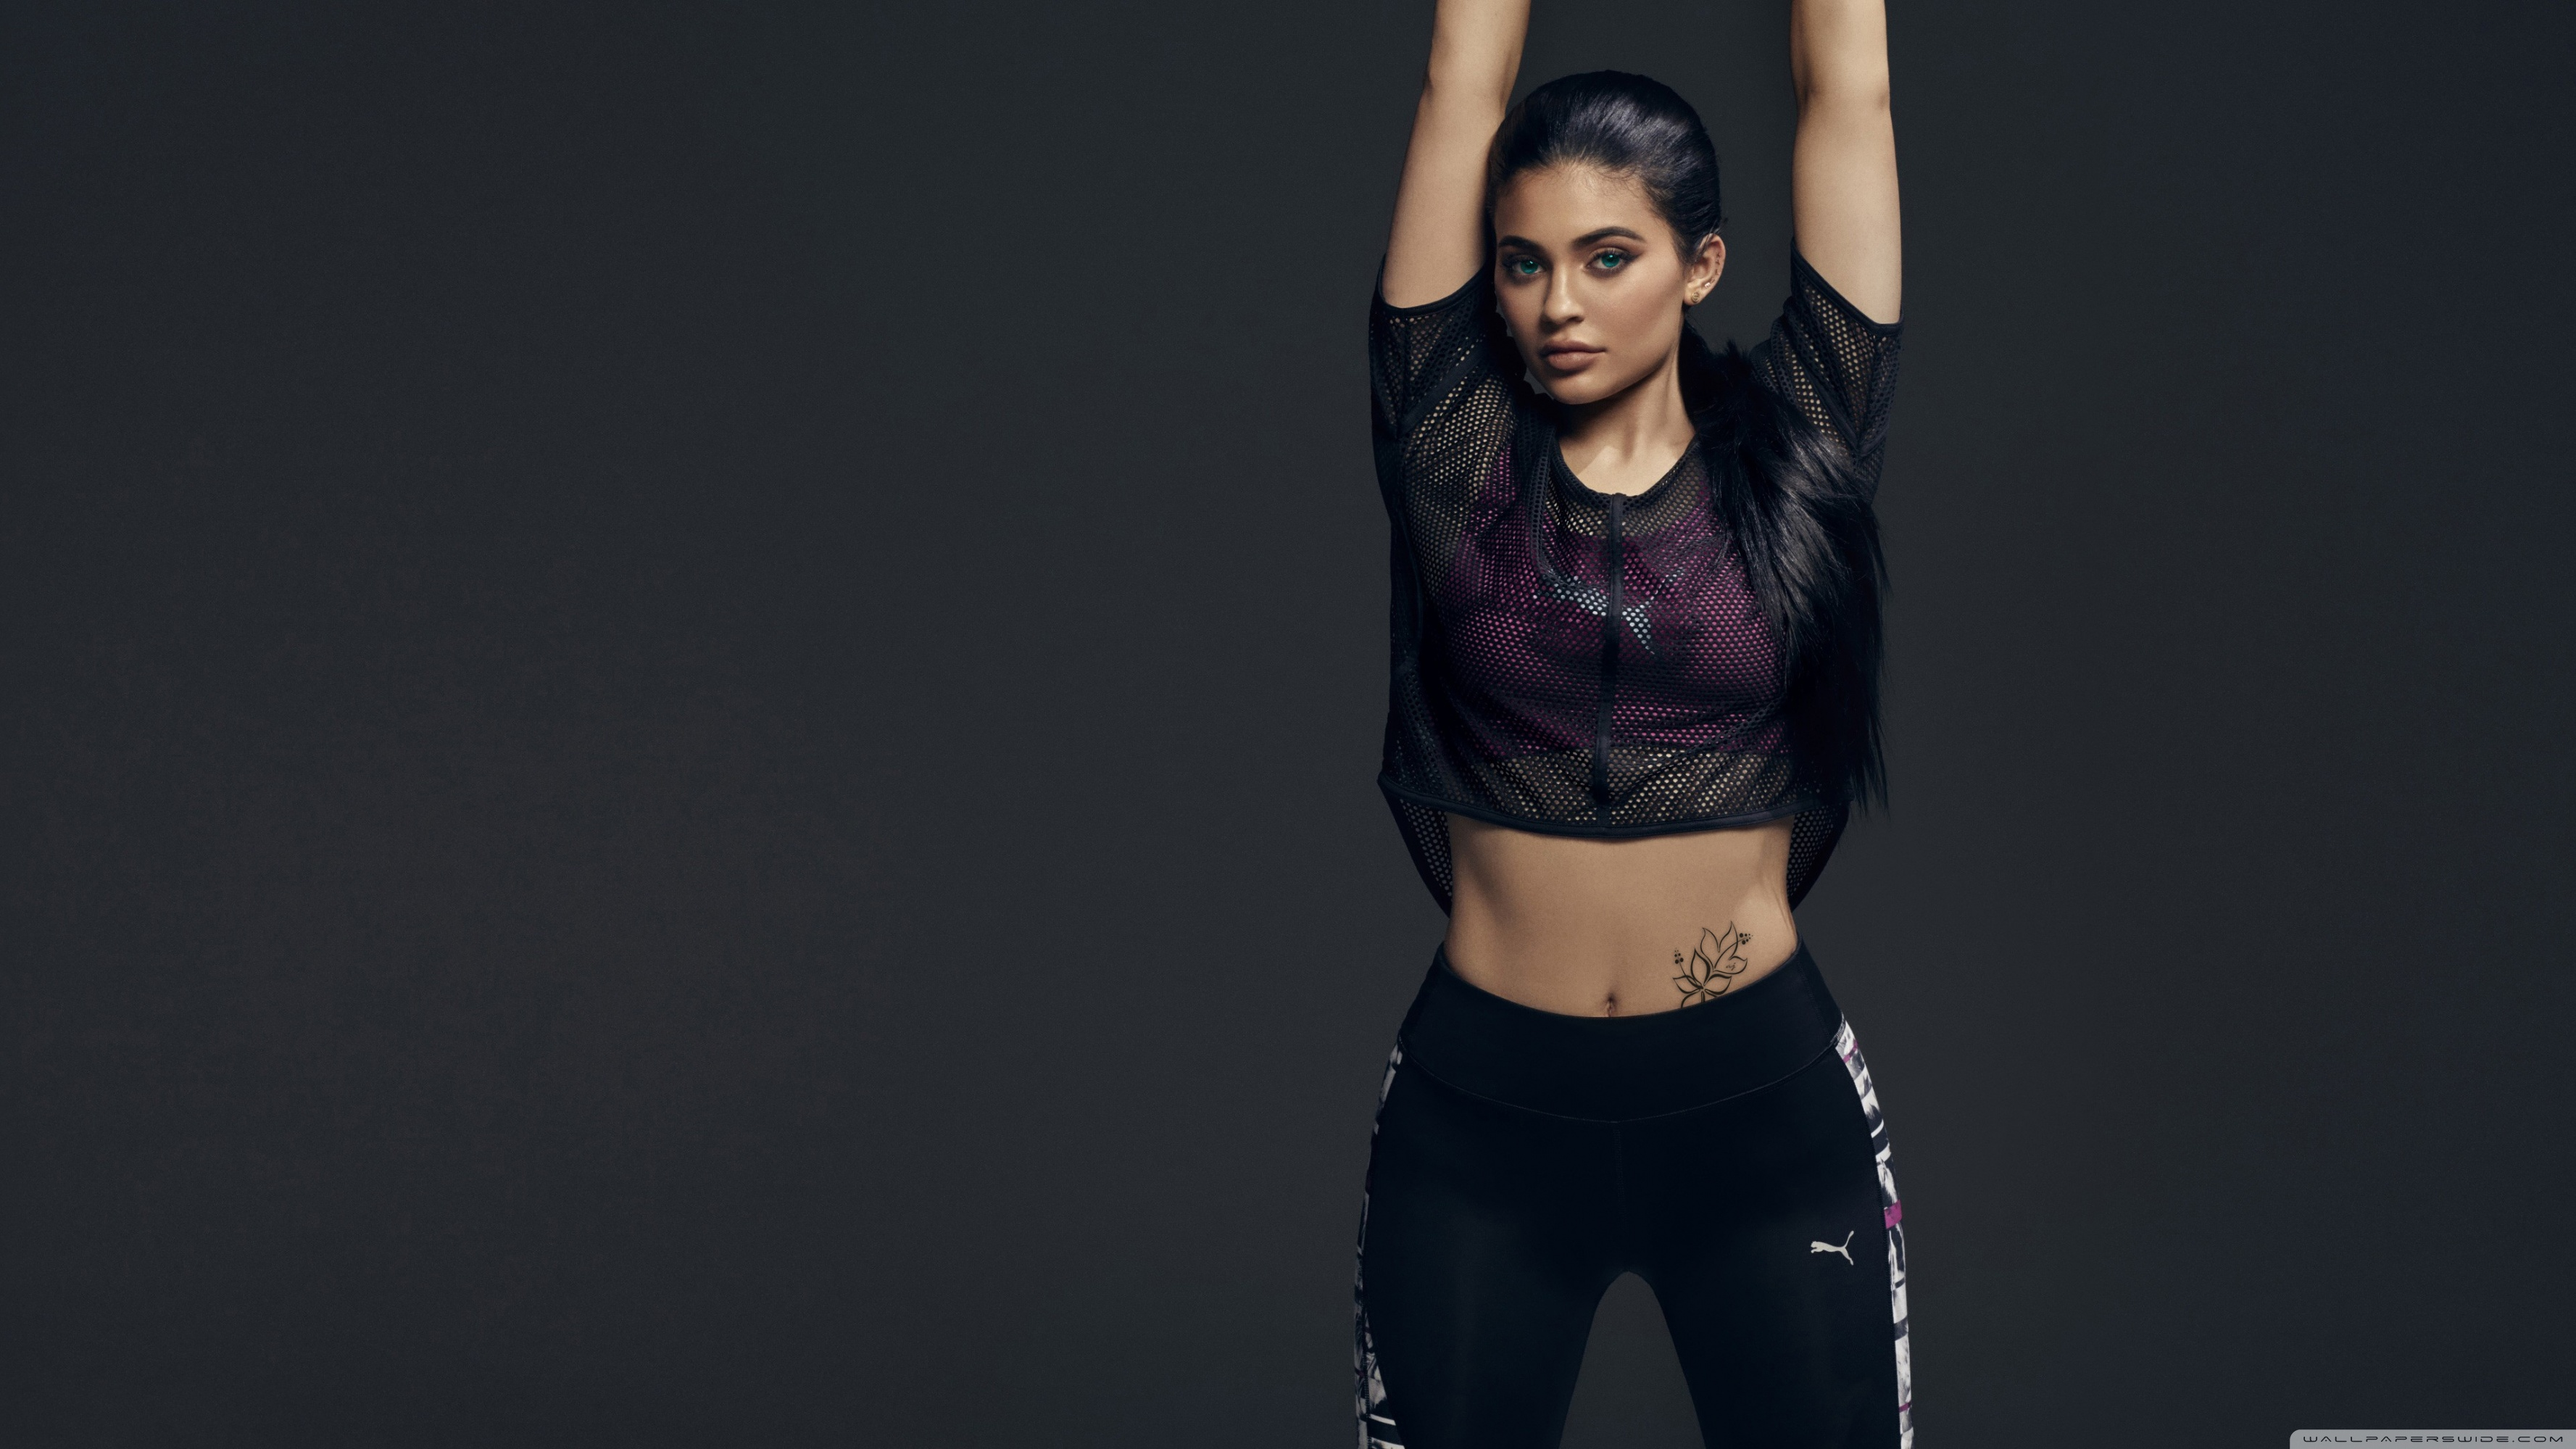 3554x1999 - Kylie Jenner Wallpapers 22